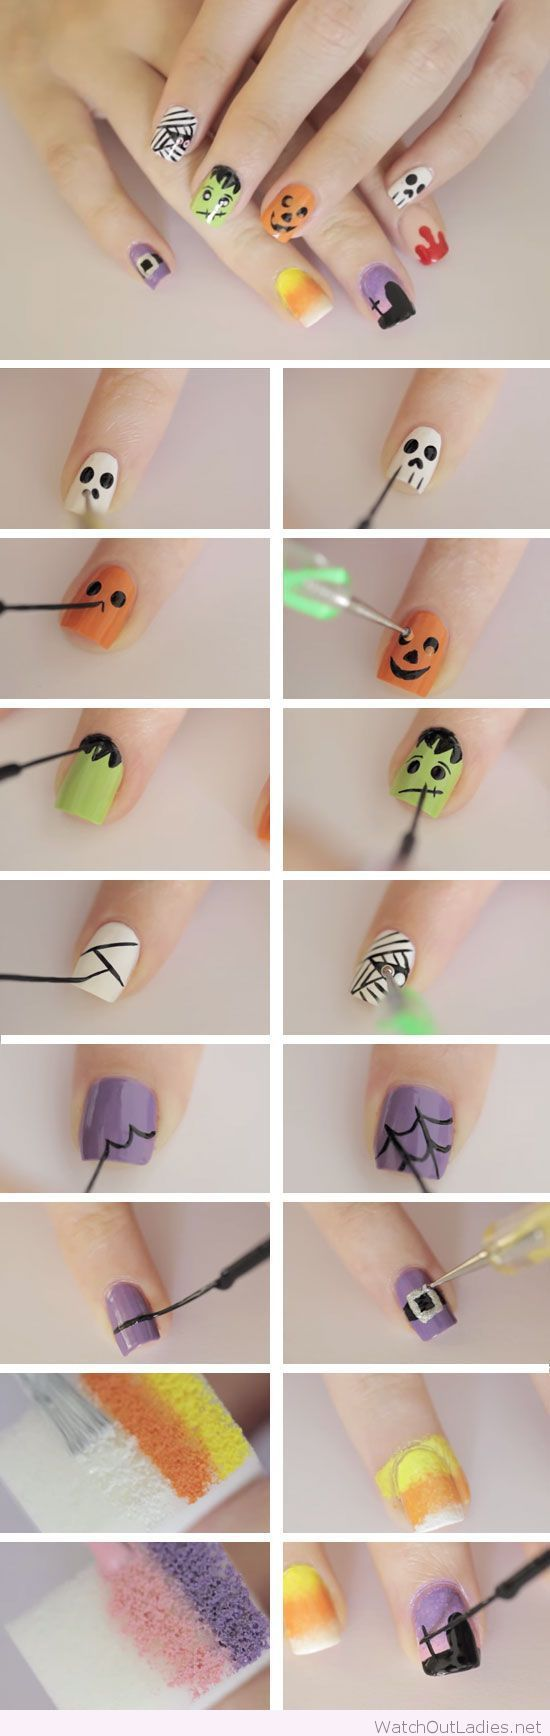 Ghoulish shapes and figures for Halloween | Nageldesign | Pinterest ...